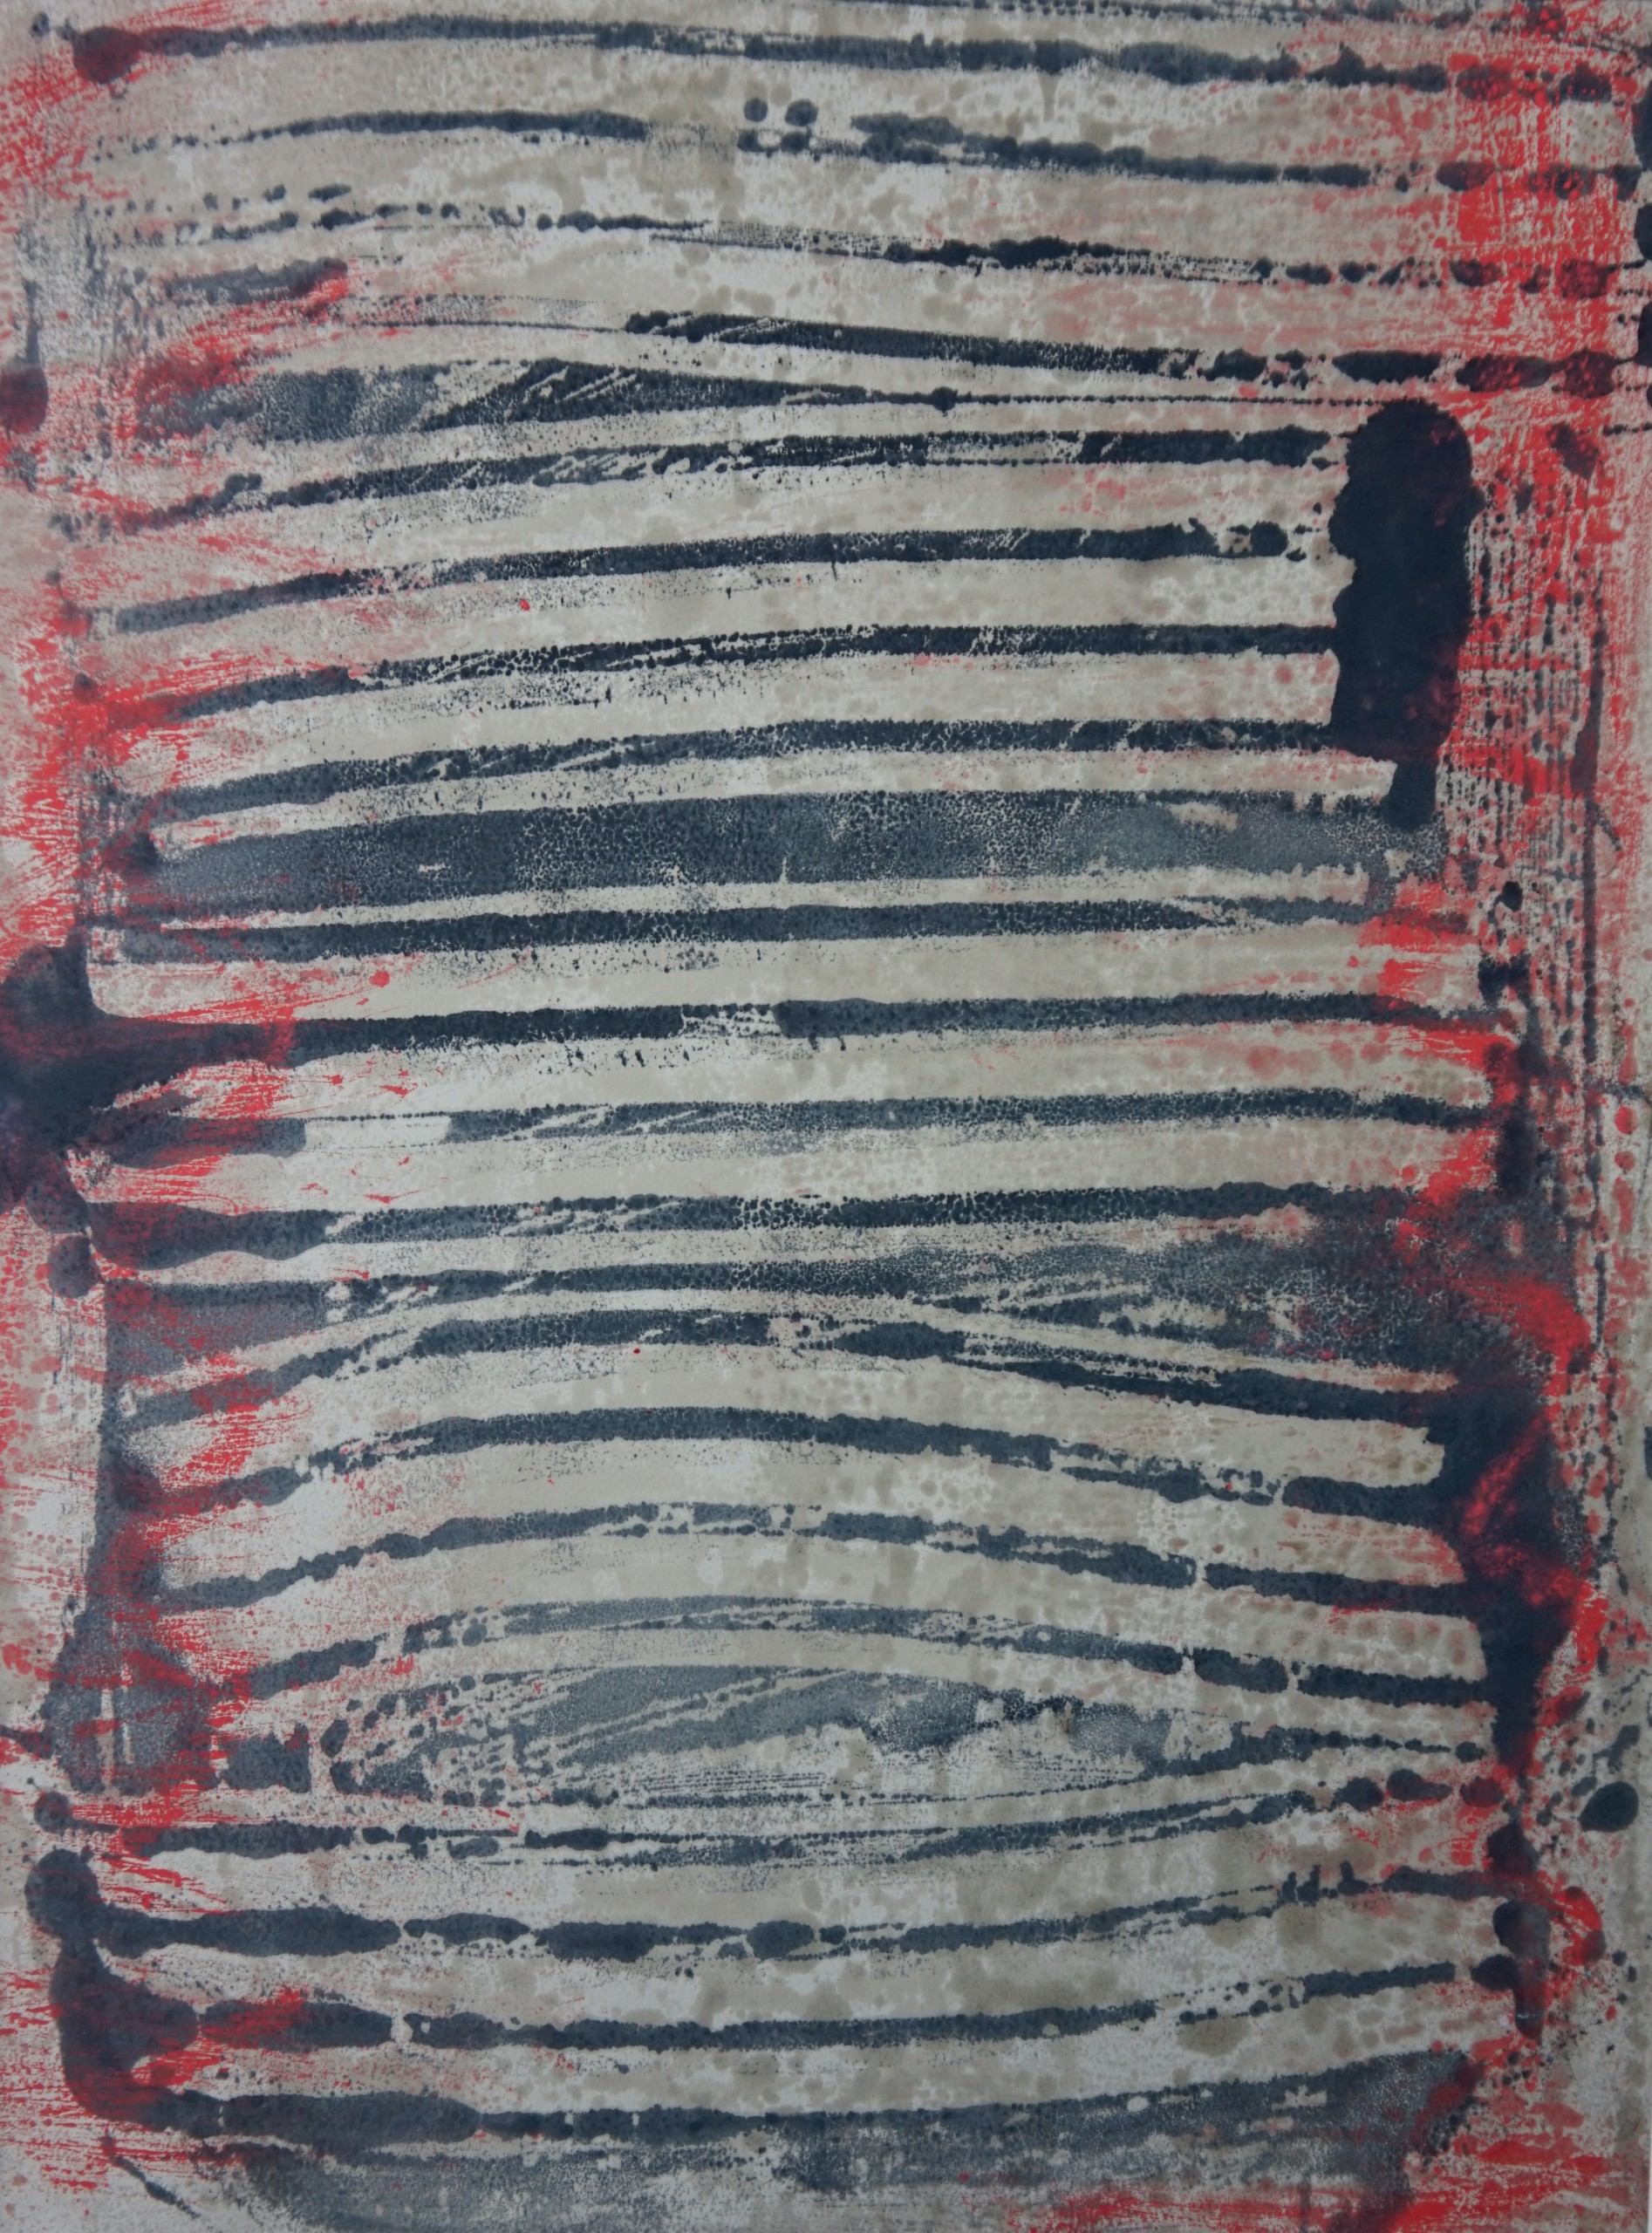 Untitled, Encaustic on Japanese Paper, 16